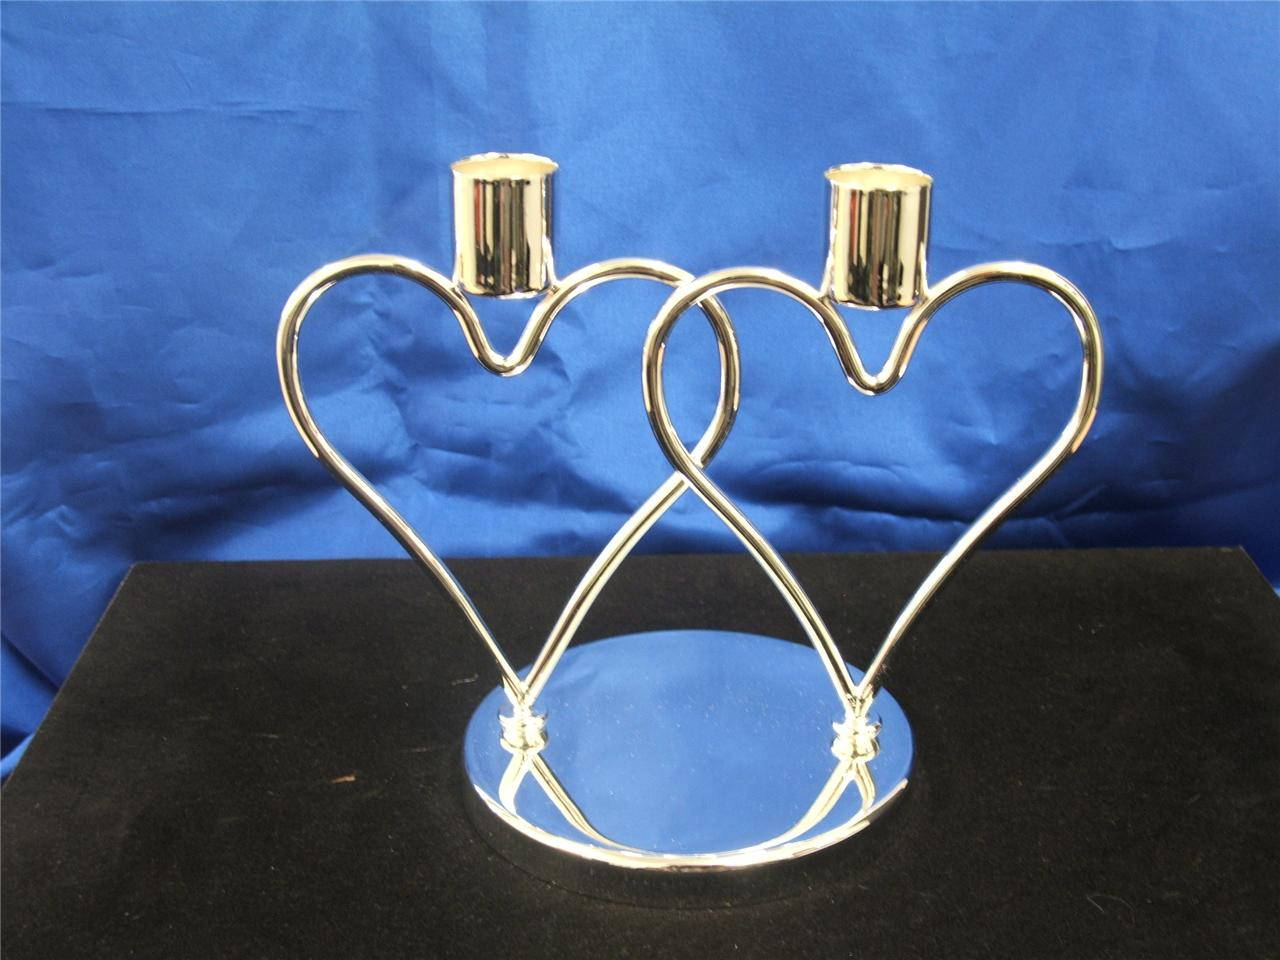 CLEARANCE-INTERLOCKING-HEART-SHINY-SILVER-CANDLE-HOLDER-8064-15-00